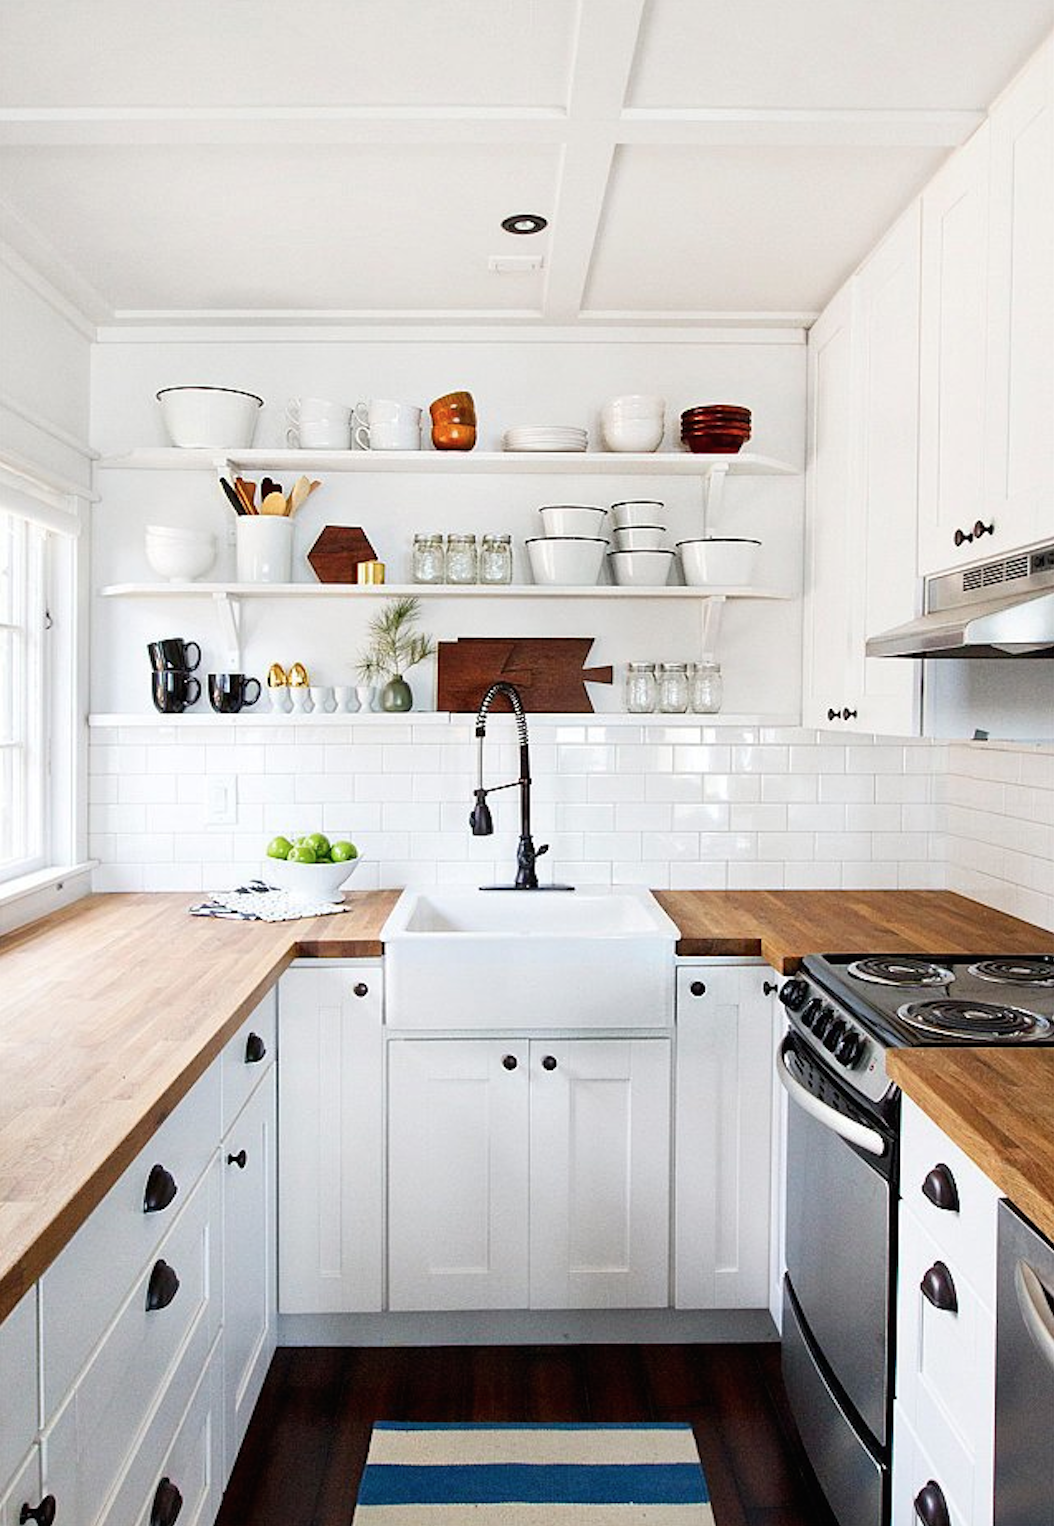 Sarah Samuel Smitten Studio Kitchen With Butcher Block Countertops